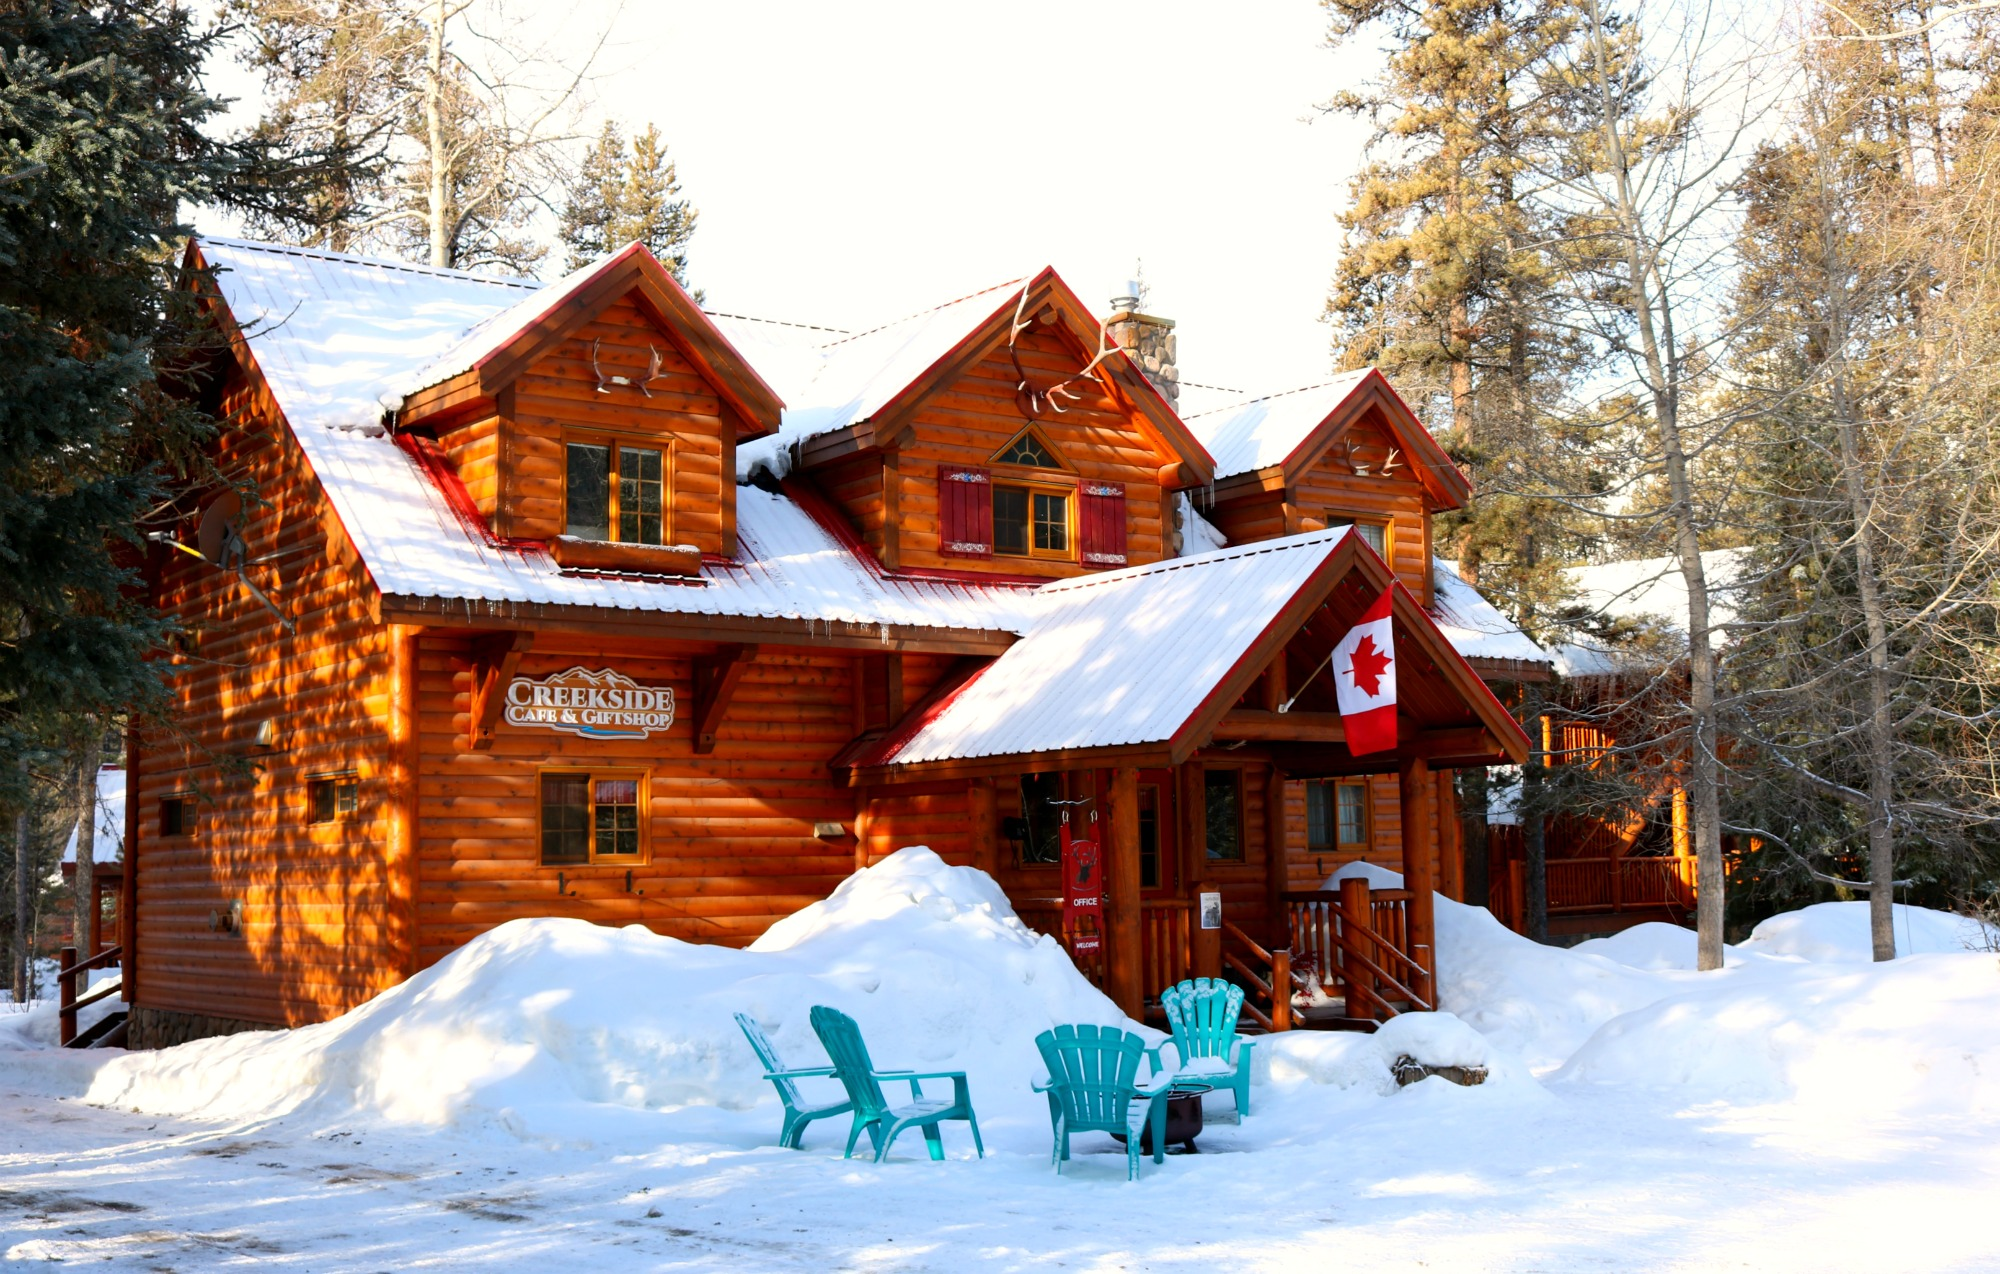 Baker Creek lodge